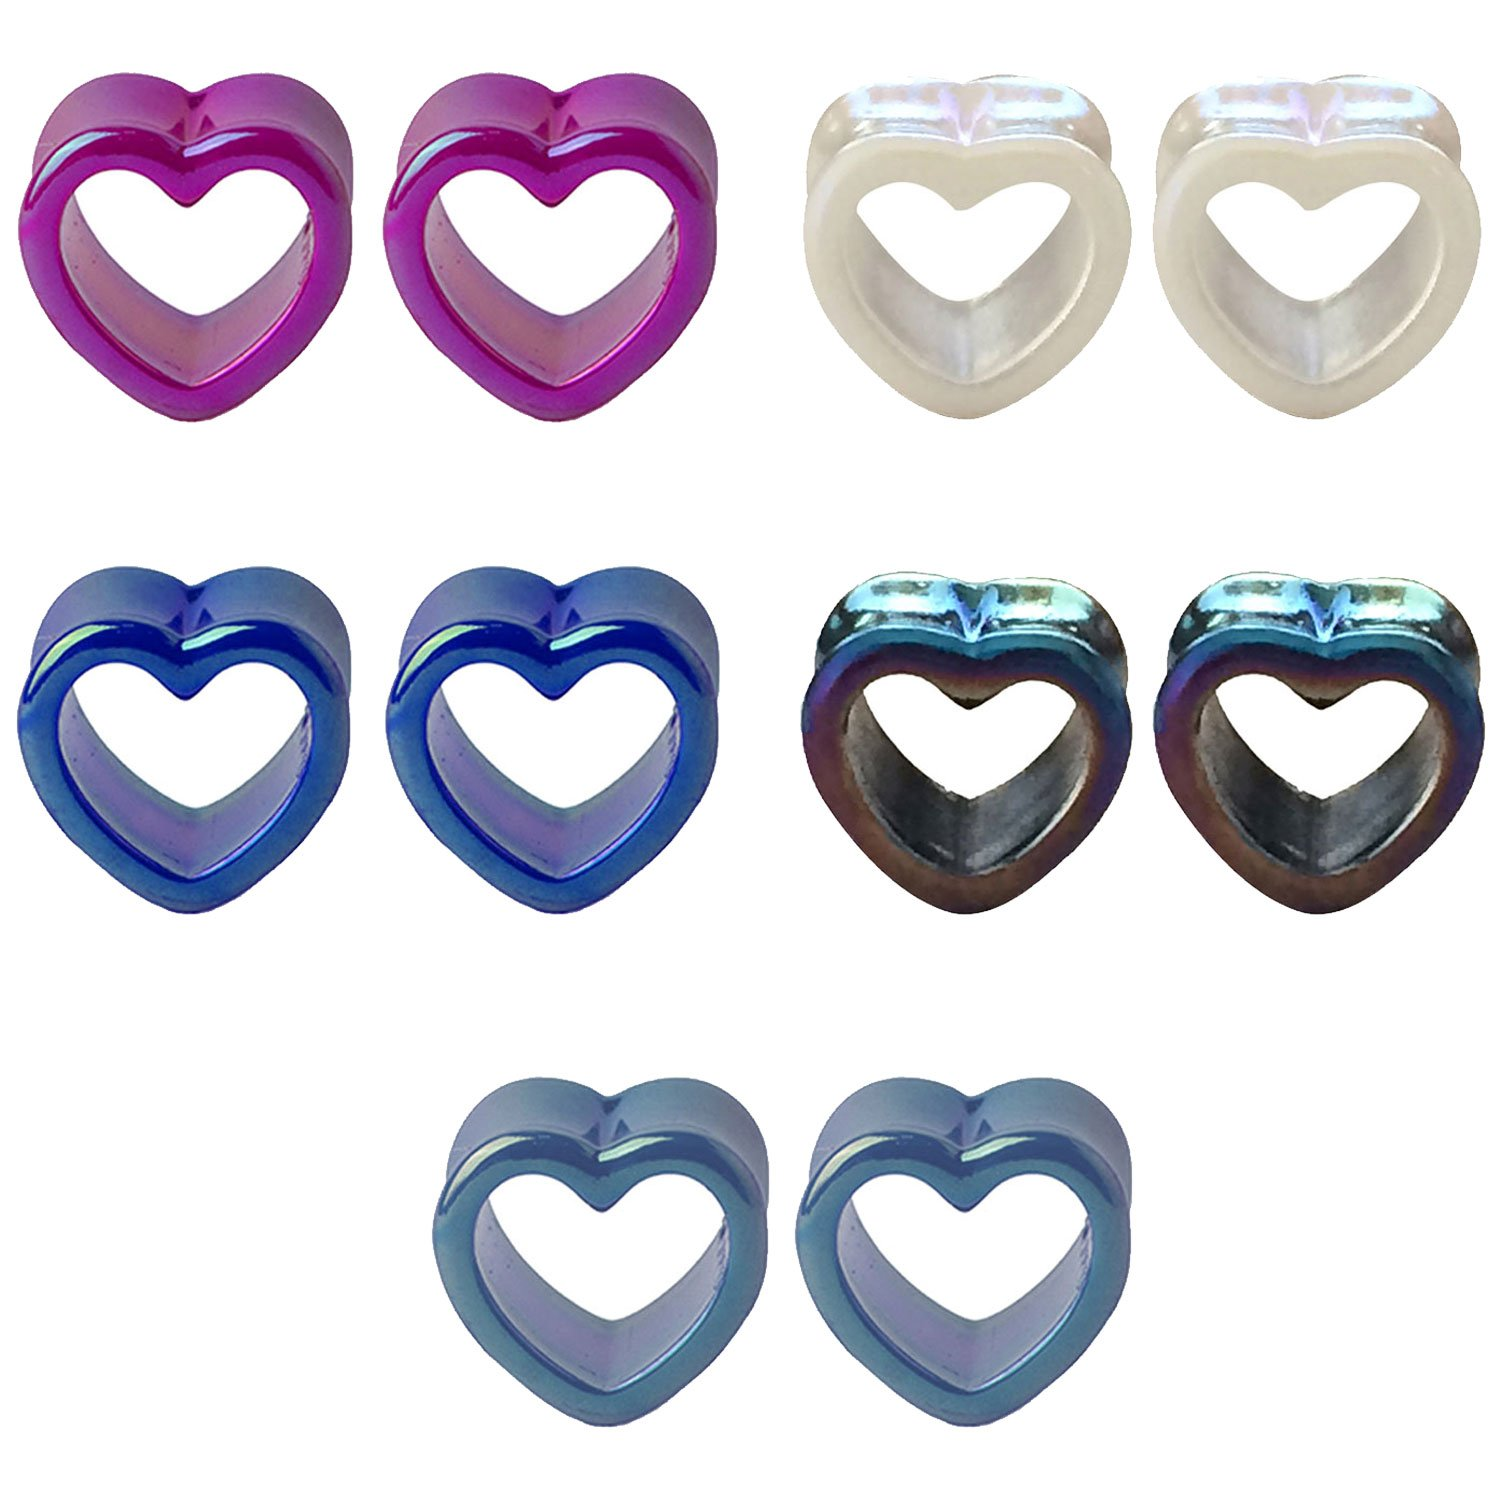 BodyJ4You 10PCS Gauge Plugs Tunnels 12mm Acrylic Glossy Heart Double Flare Multicolor Ear Expander